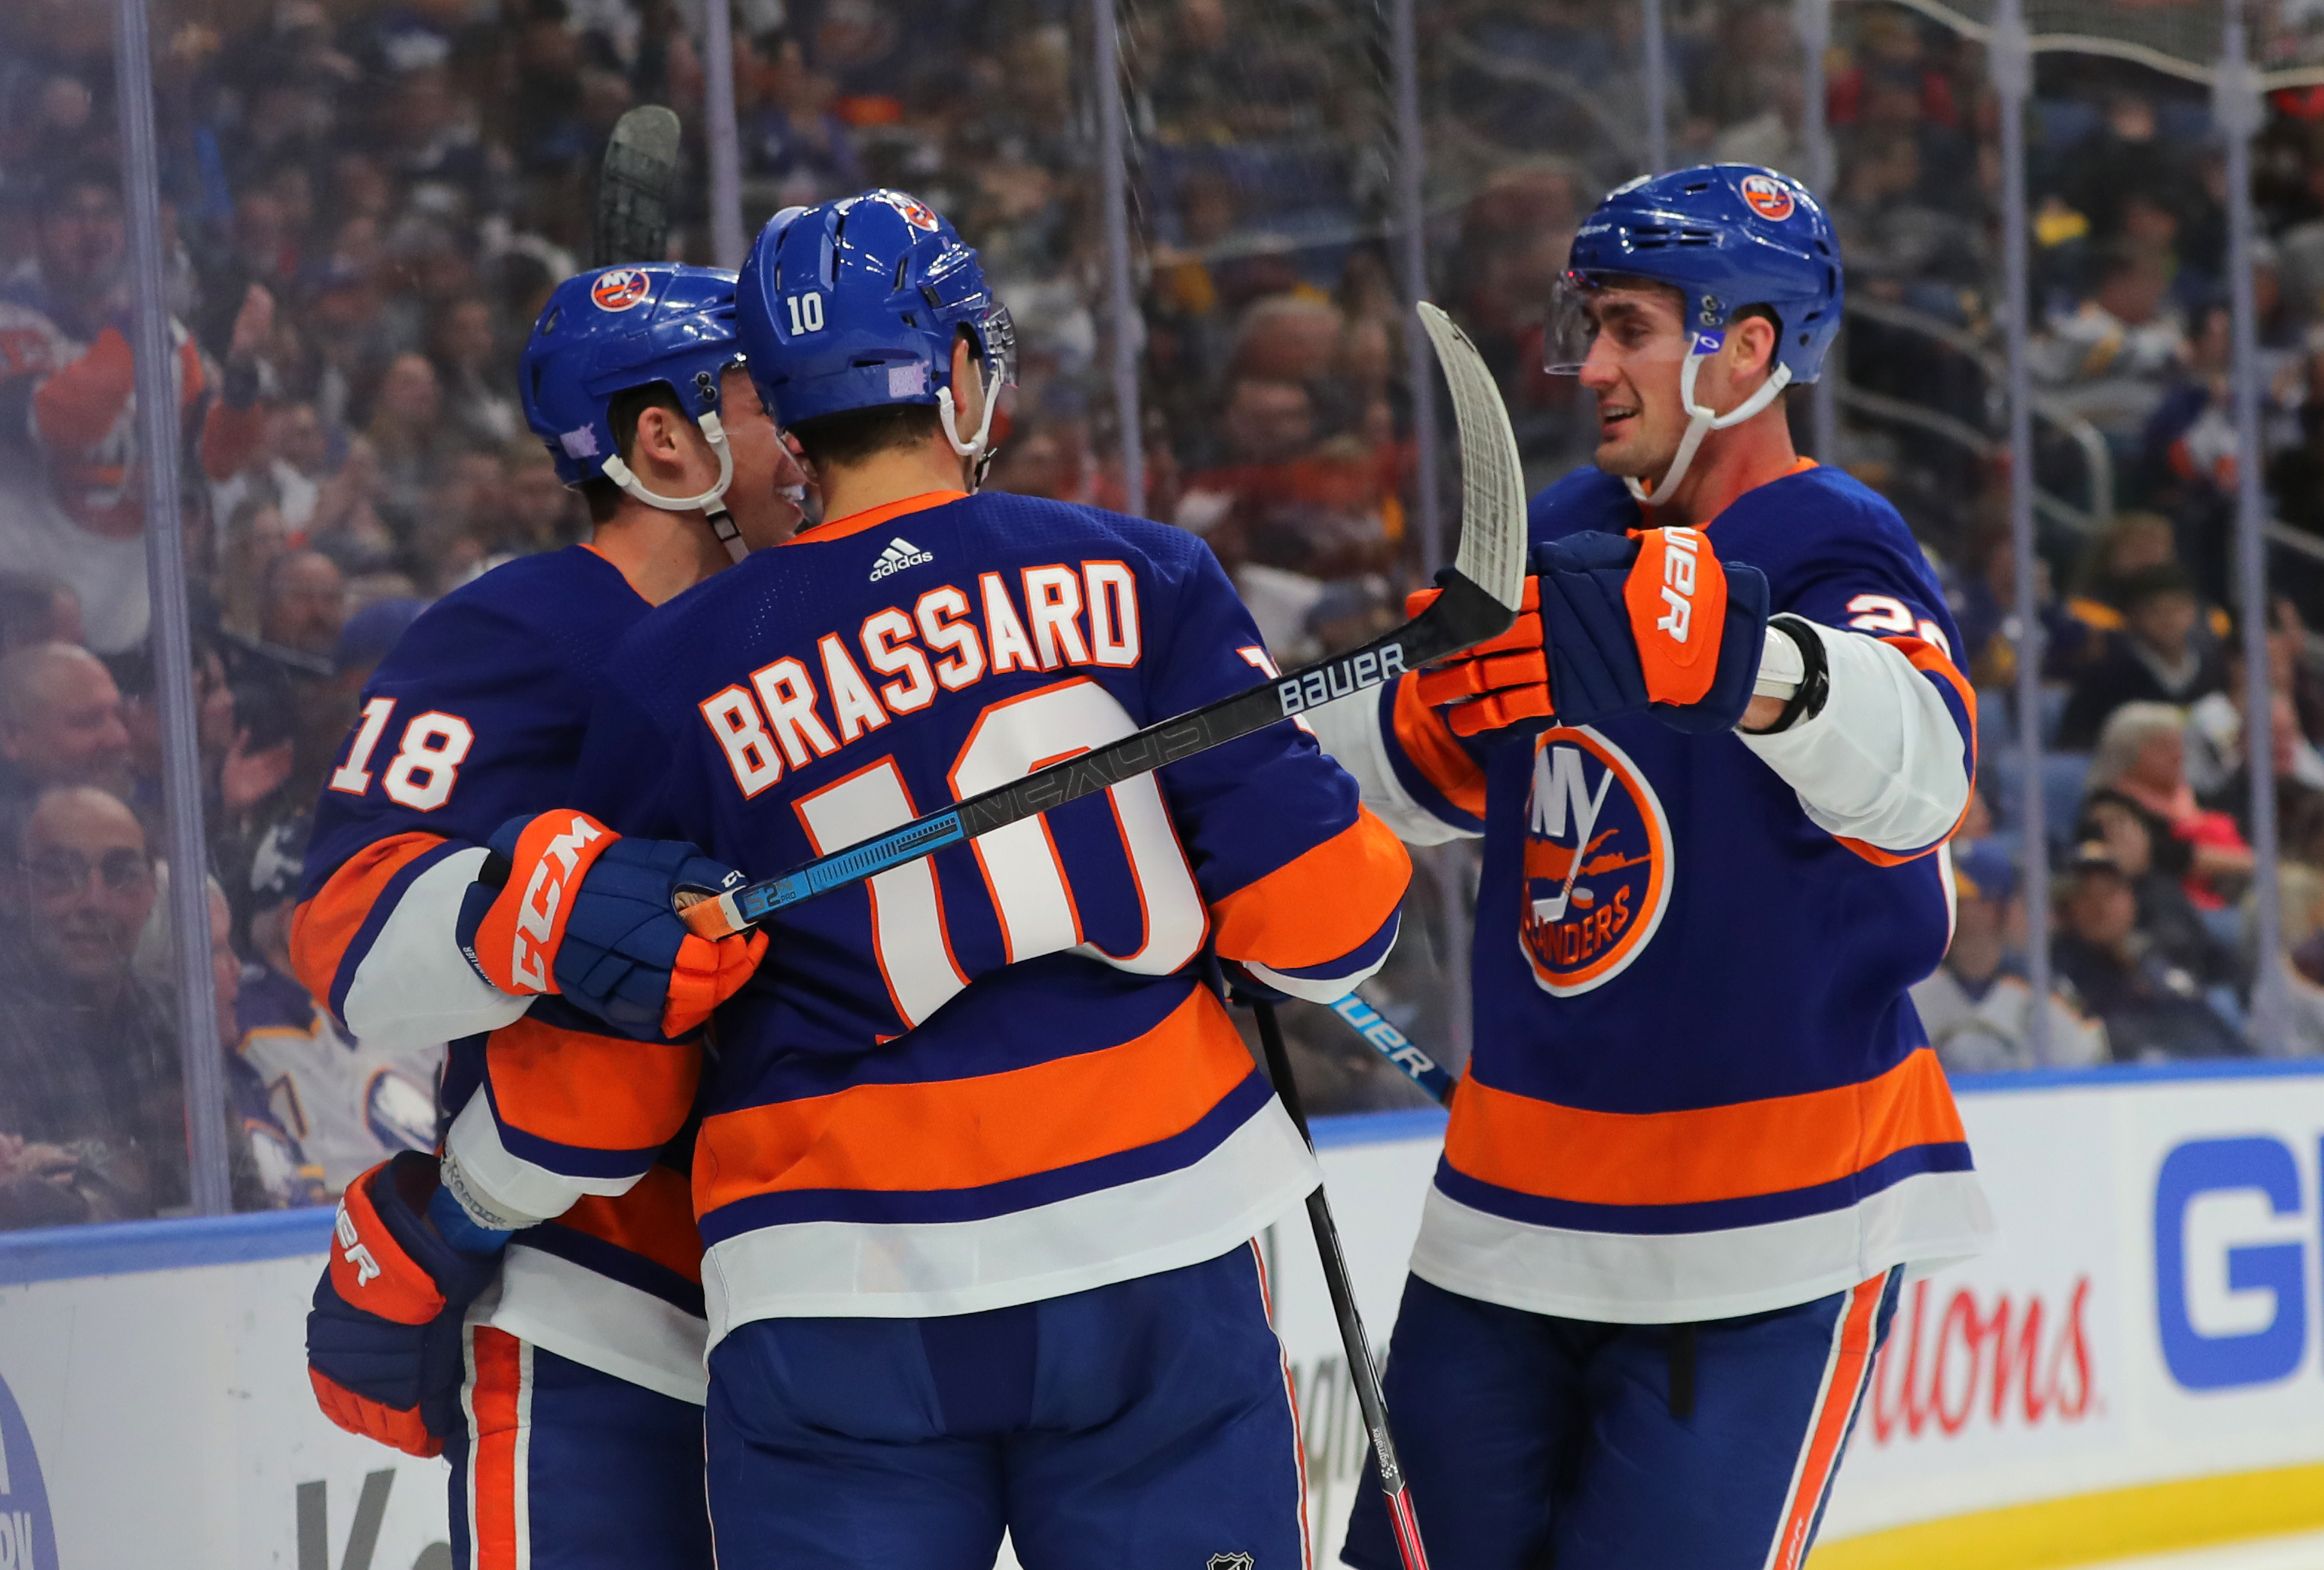 Nov 2, 2019; Buffalo, NY, USA; New York Islanders center Derick Brassard (10) celebrates with teammates after scoring a goal during the first period against the Buffalo Sabres at KeyBank Center. Mandatory Credit: Timothy T. Ludwig-USA TODAY Sports